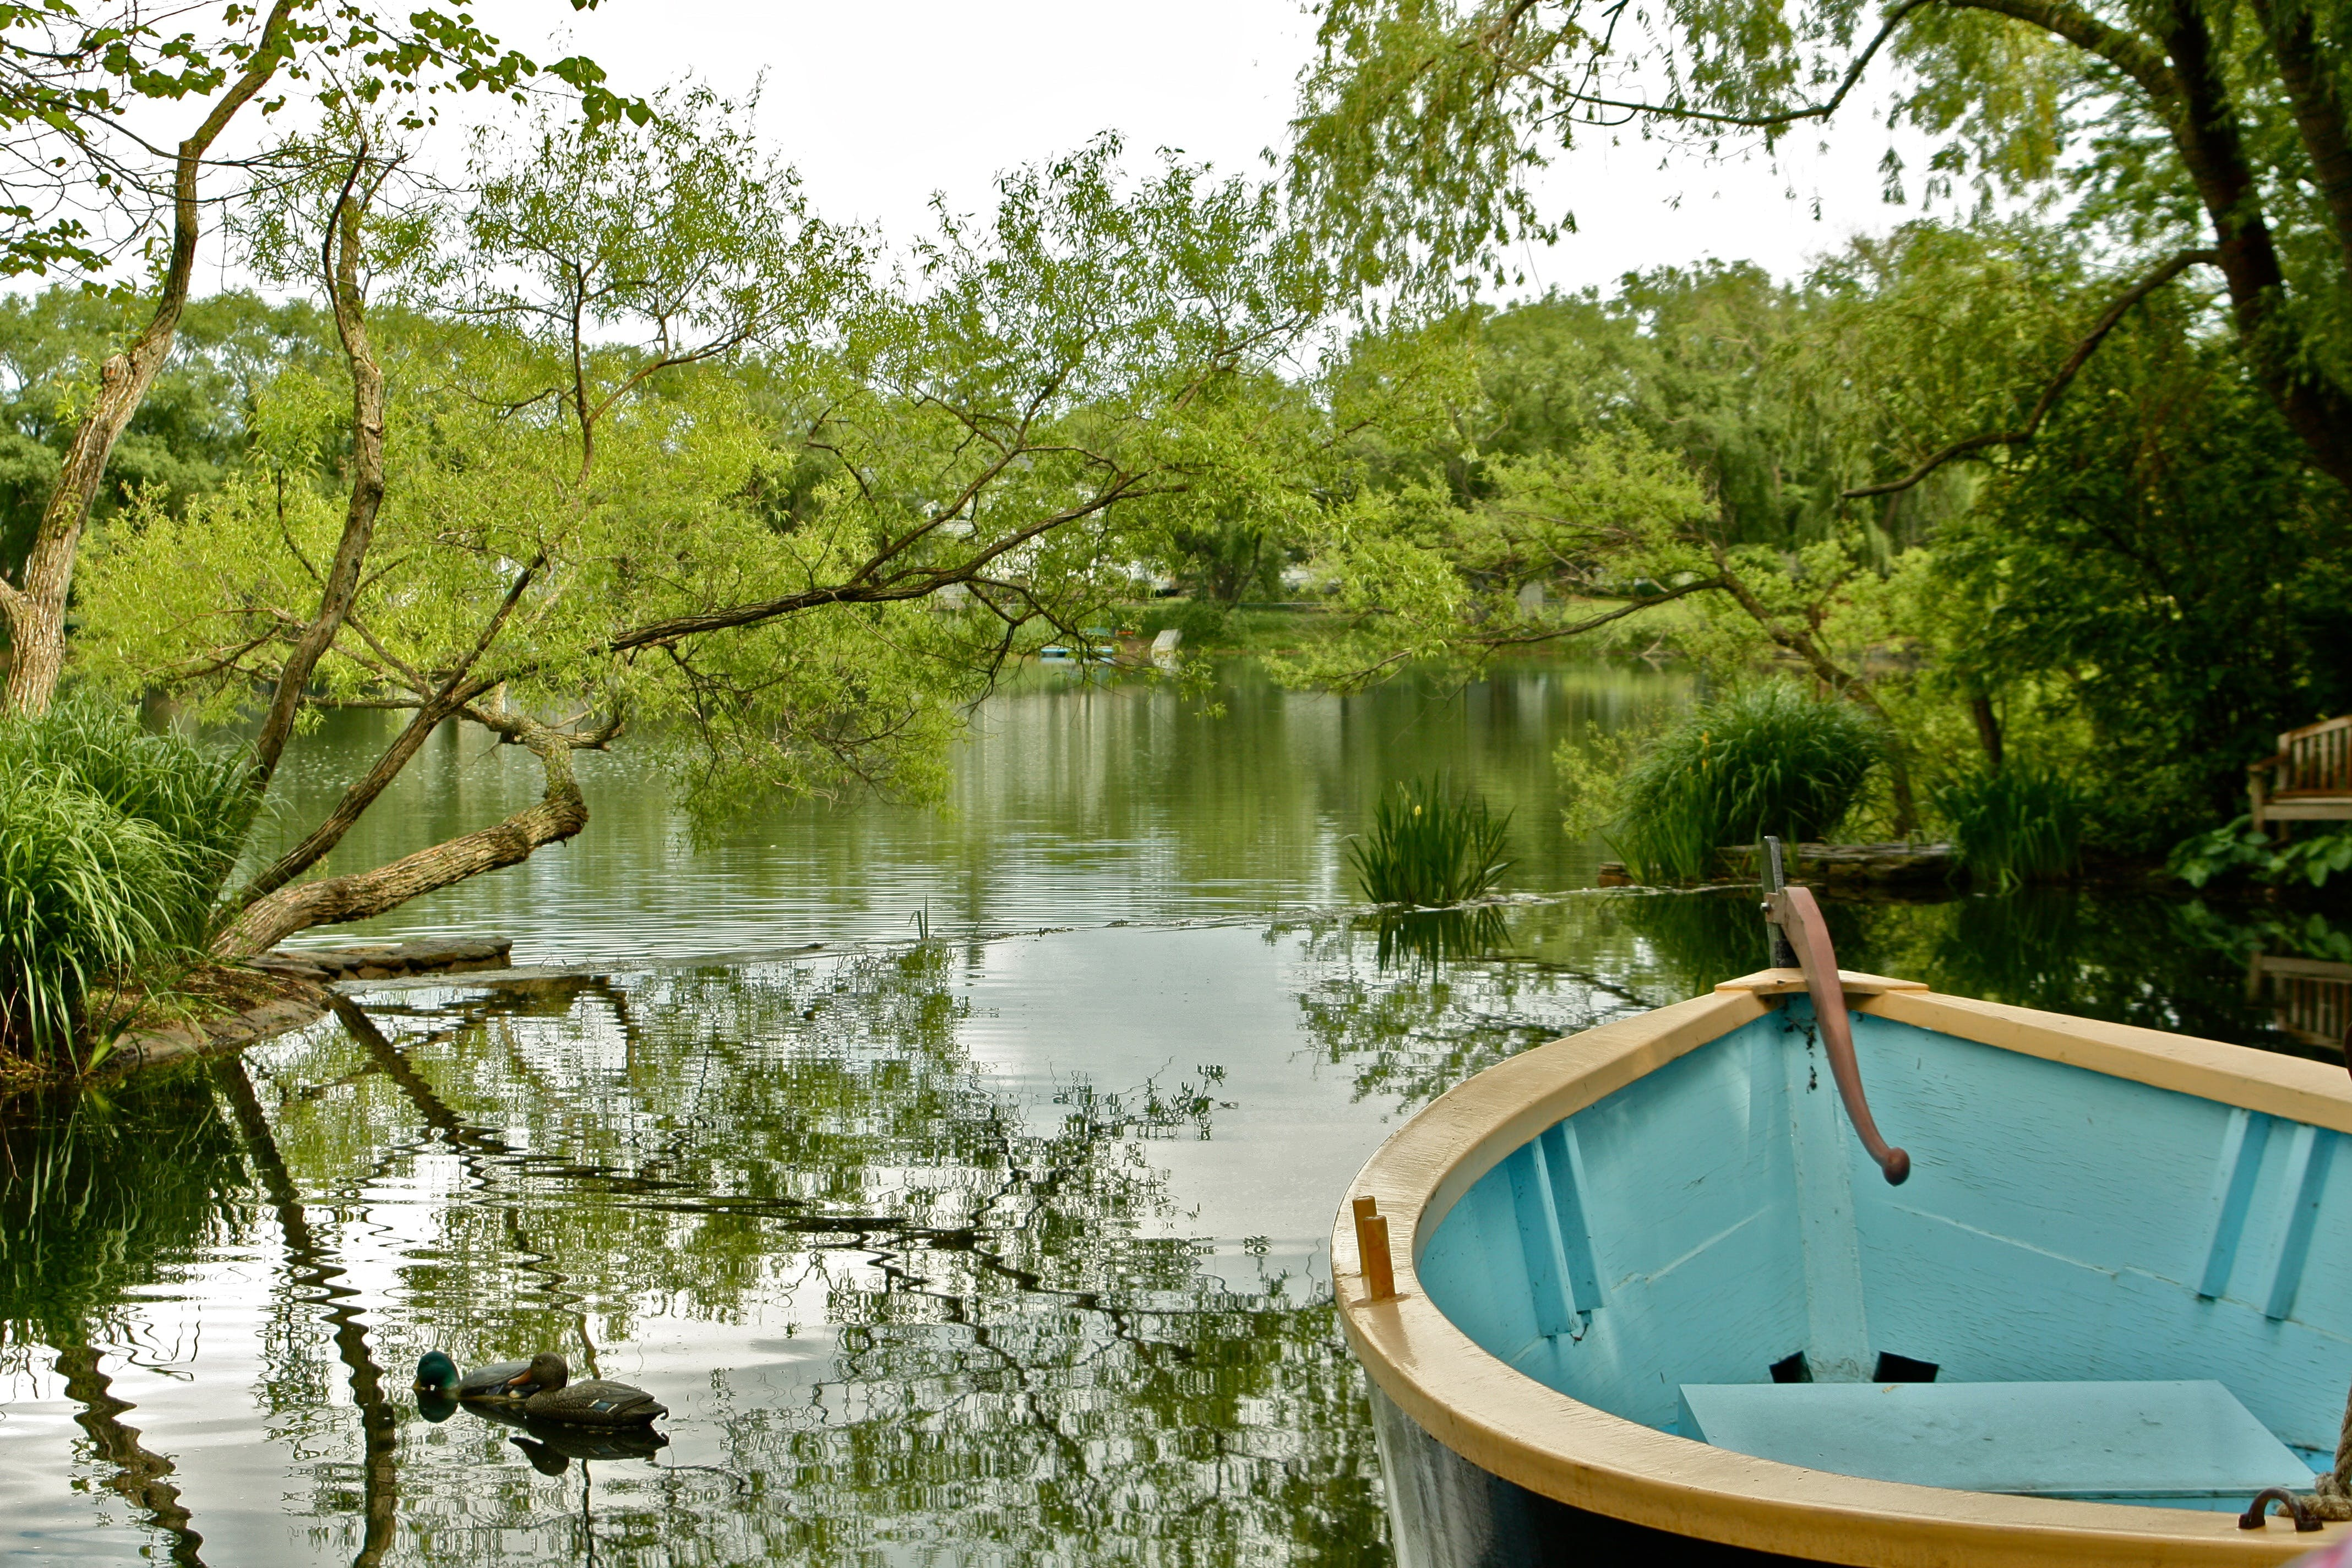 Free stock photo of boat, calm waters, lake, pond